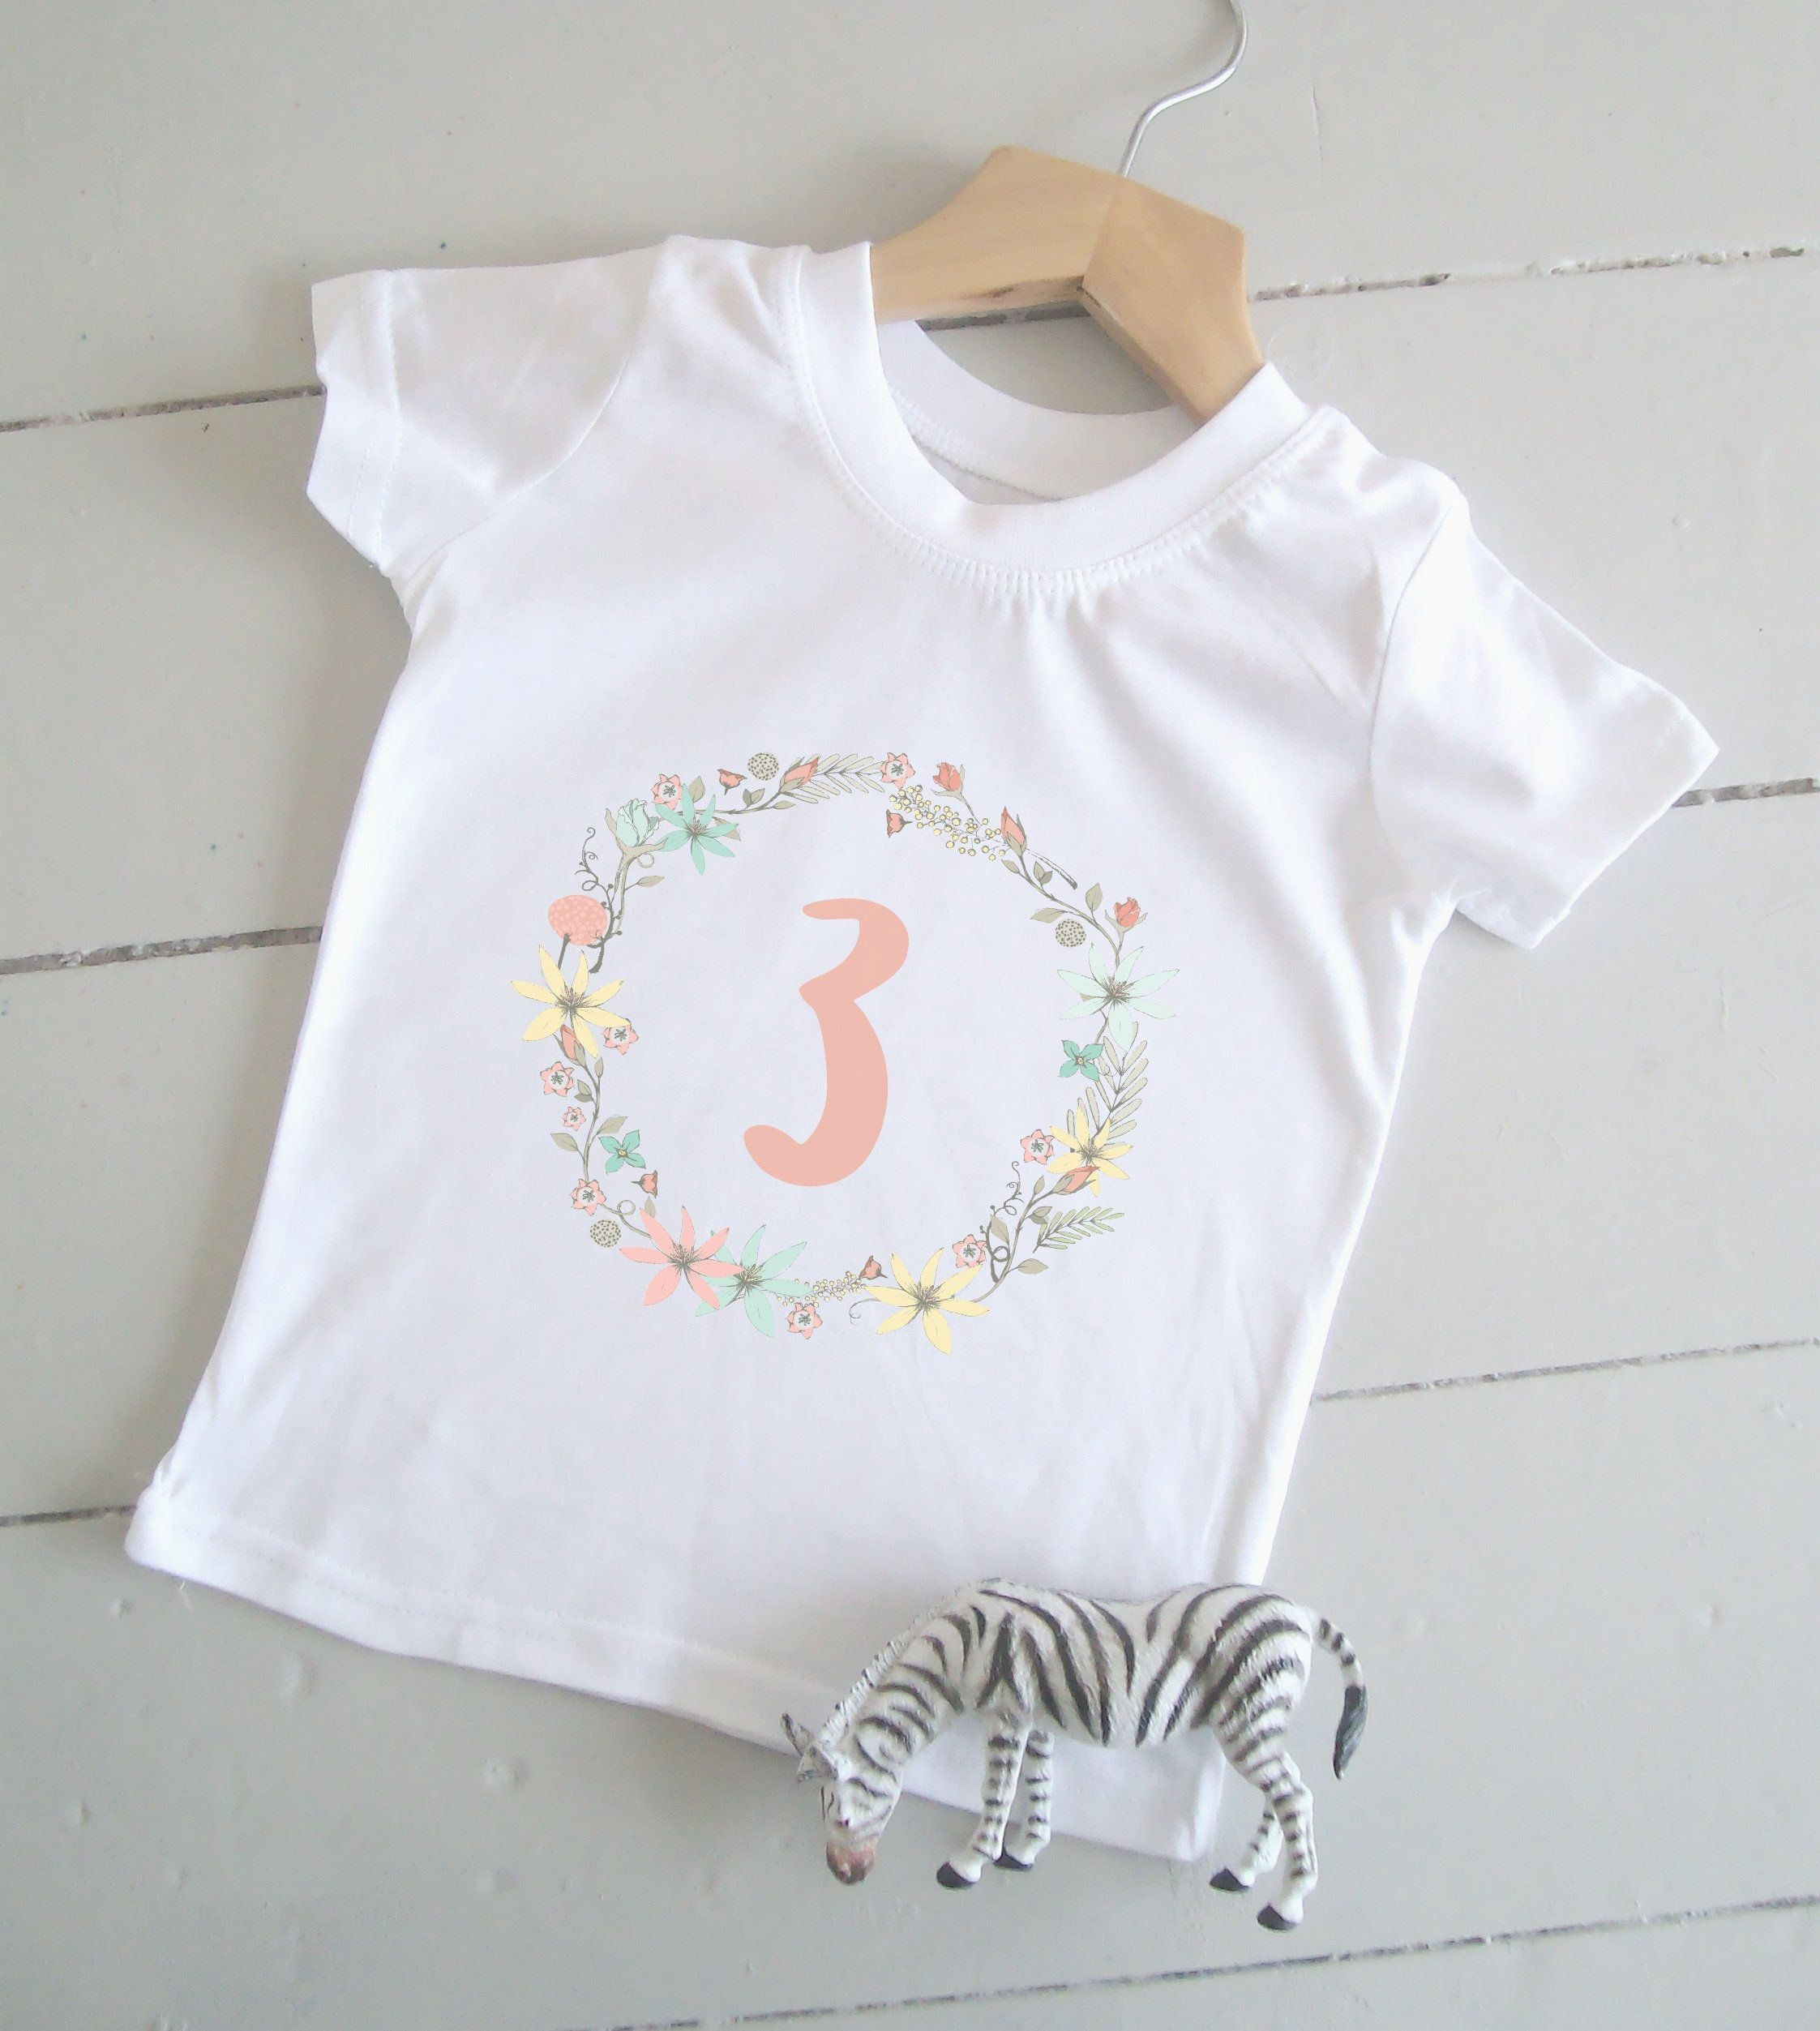 1a158989f7eb5 Floral Girl's 3rd Birthday Tshirt / 3 Today Shirt / Third Birthday Top /  Toddler Age Print T Shirt / Pink / Party Outfit / Kid's Clothing